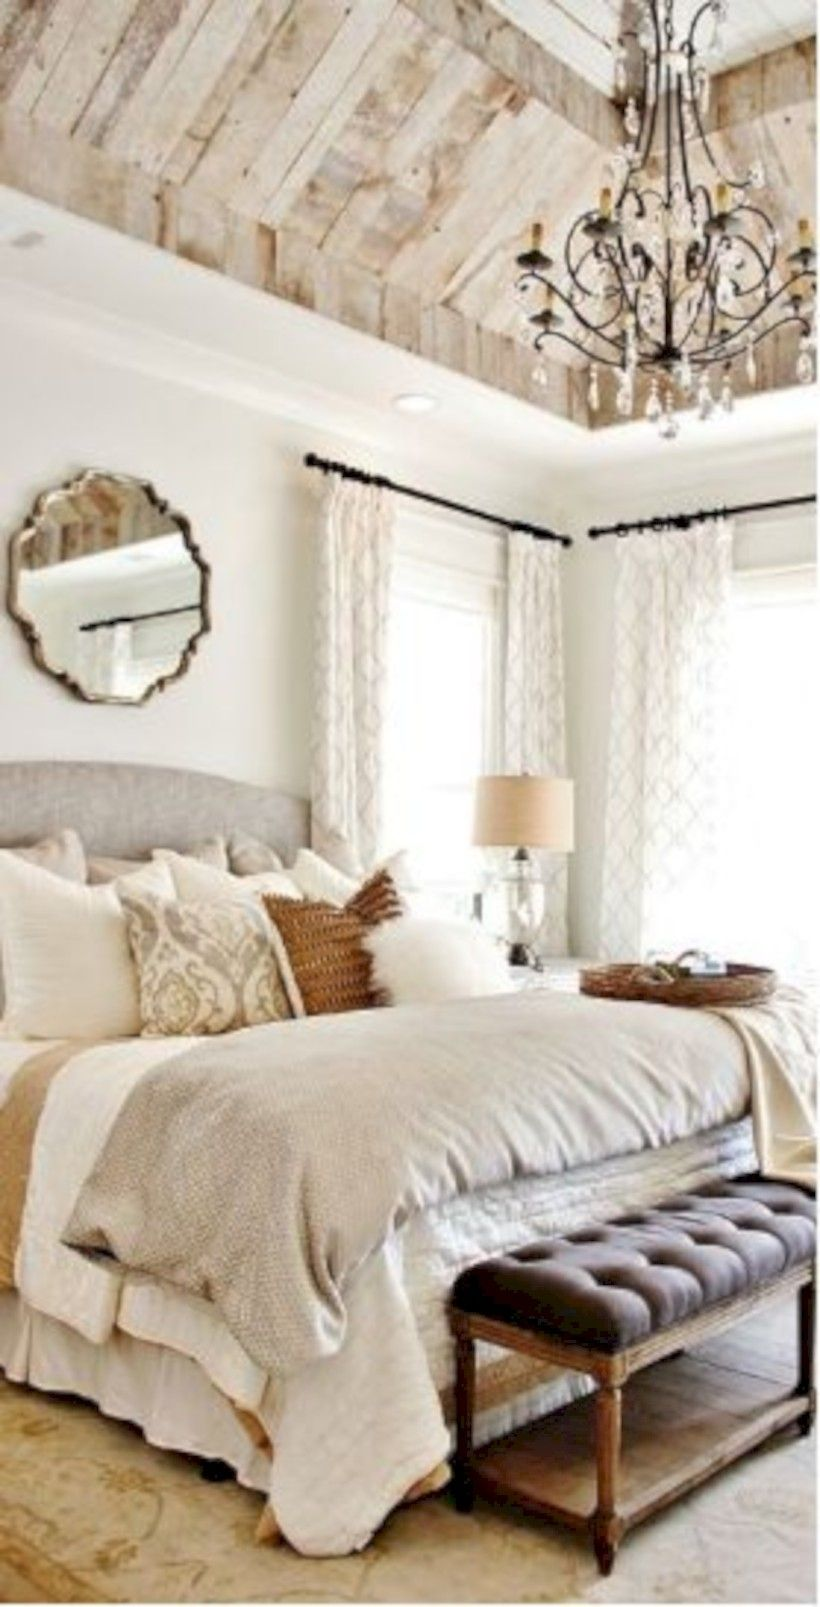 Decoration ideas for bedroom  fabulous small master bedroom decorating ideas  small master